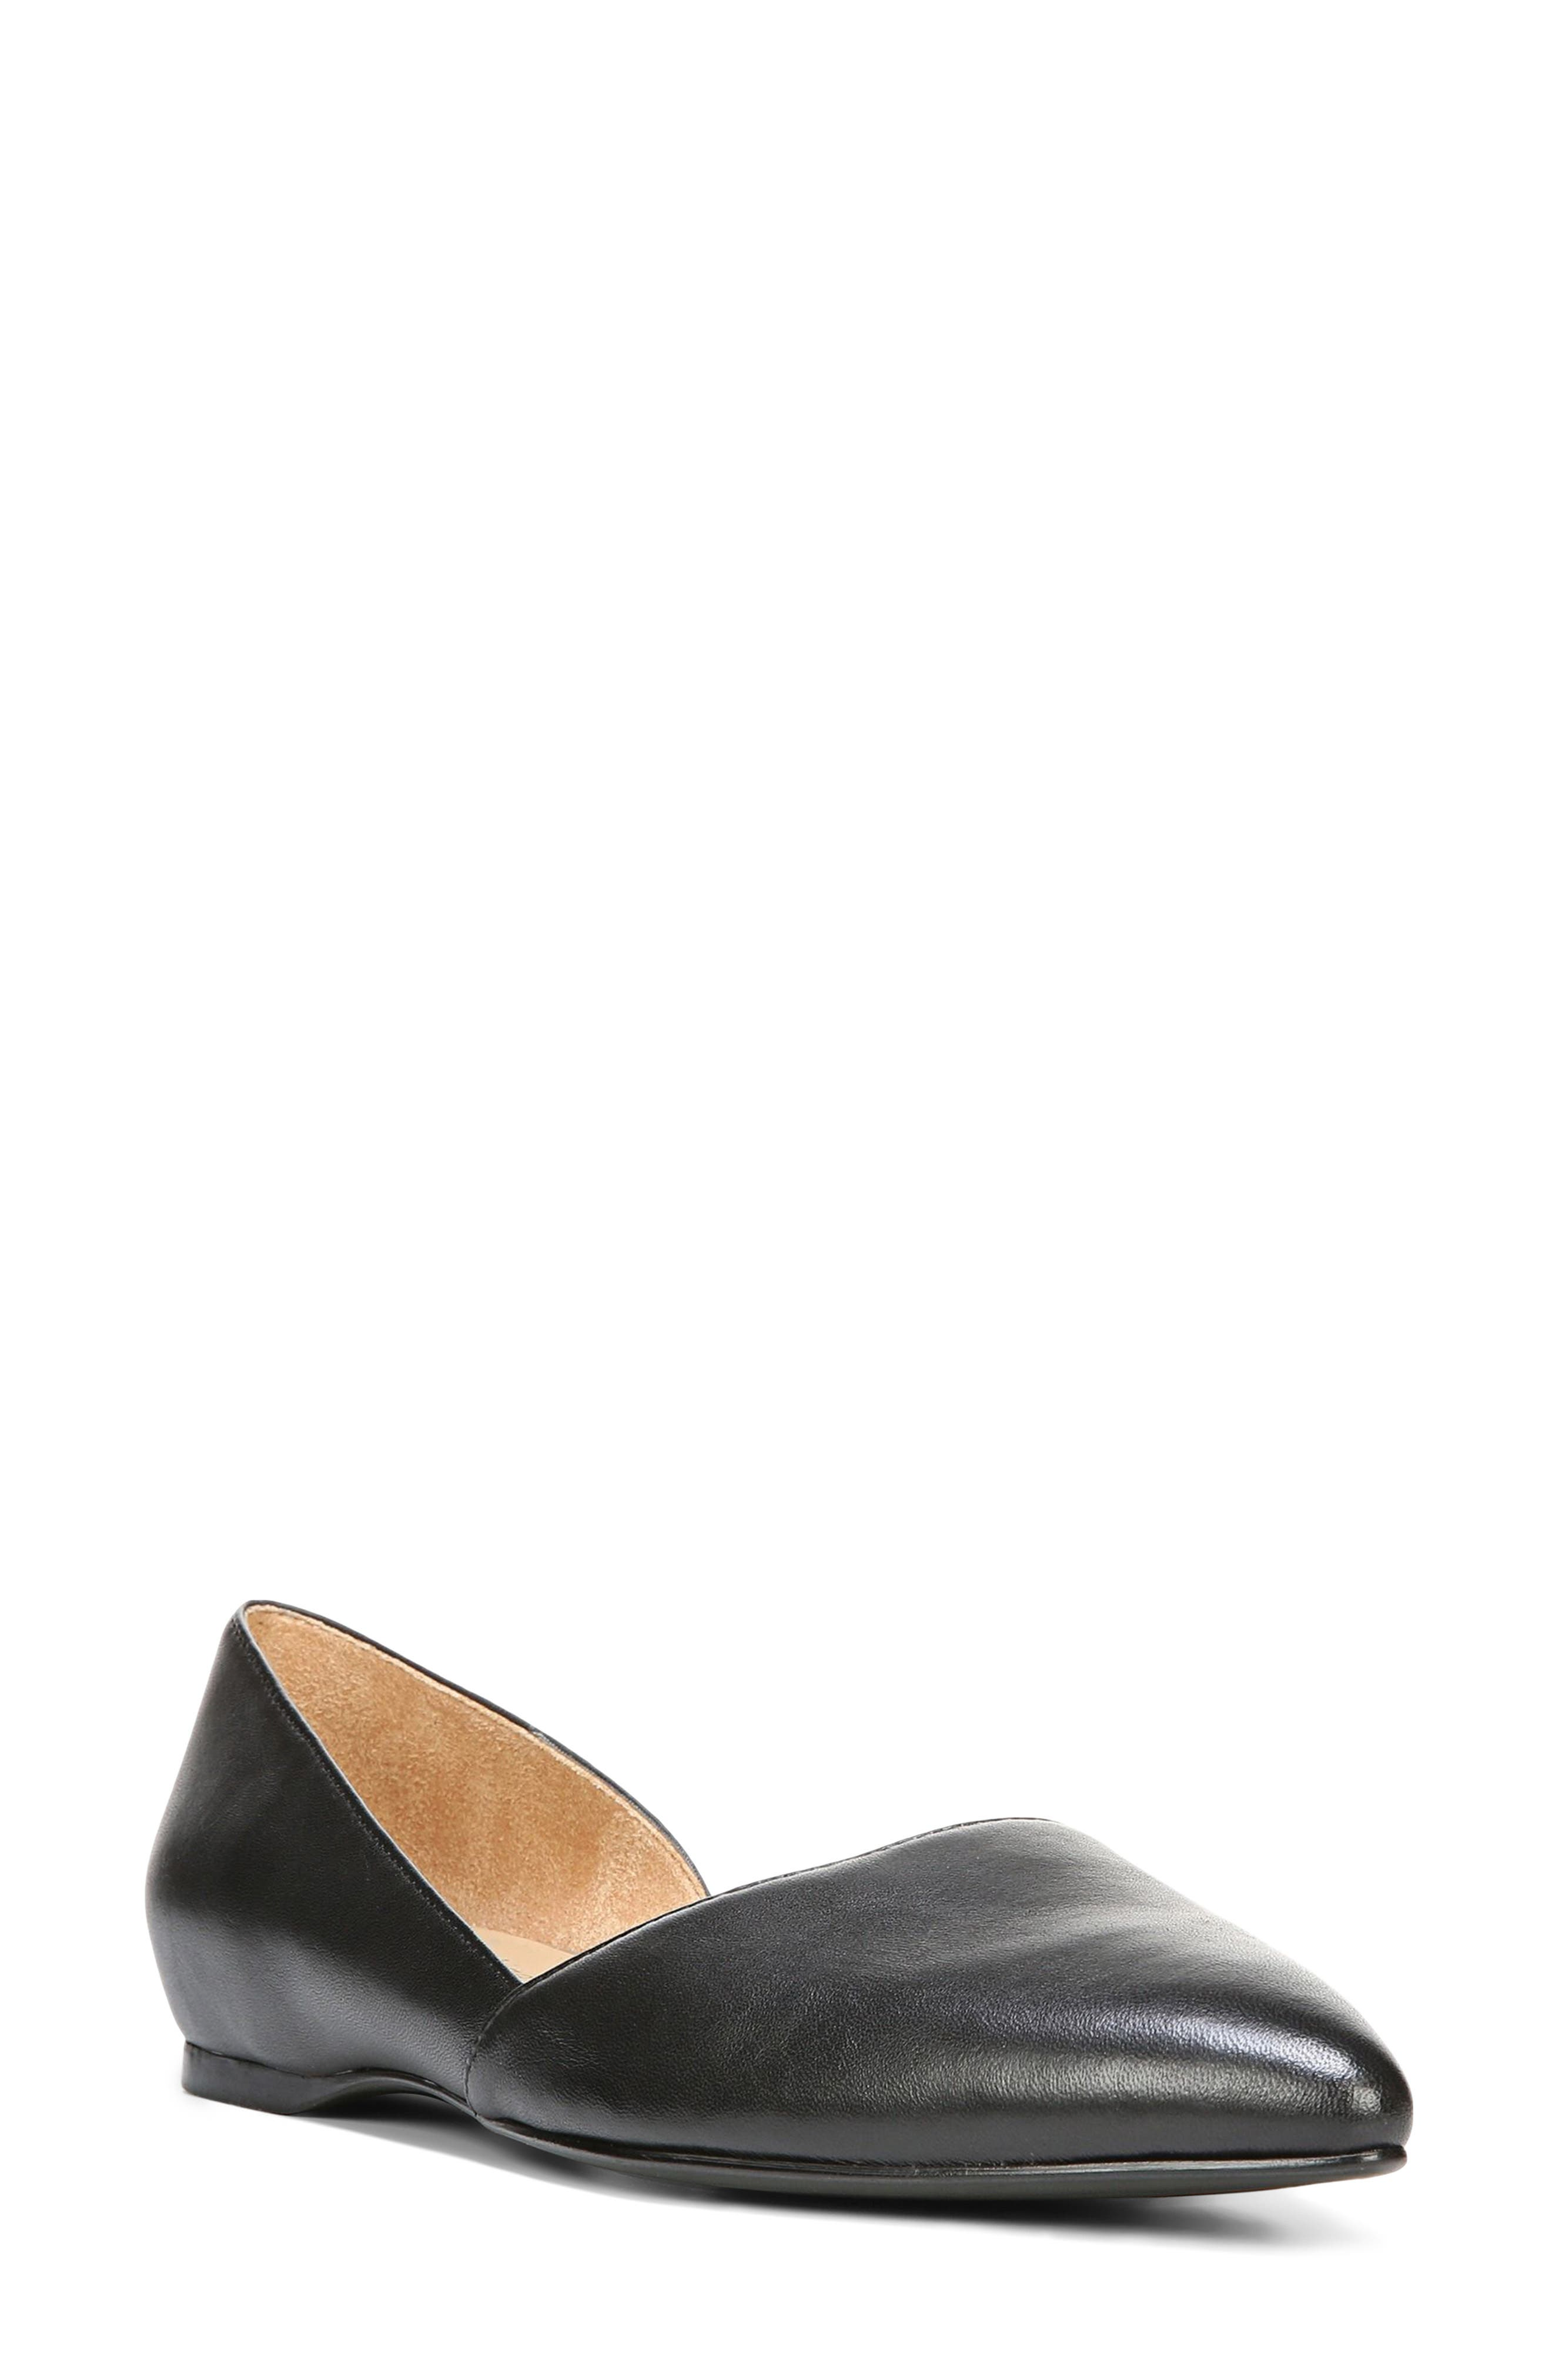 NATURALIZER, Samantha Half d'Orsay Flat, Main thumbnail 1, color, BLACK LEATHER